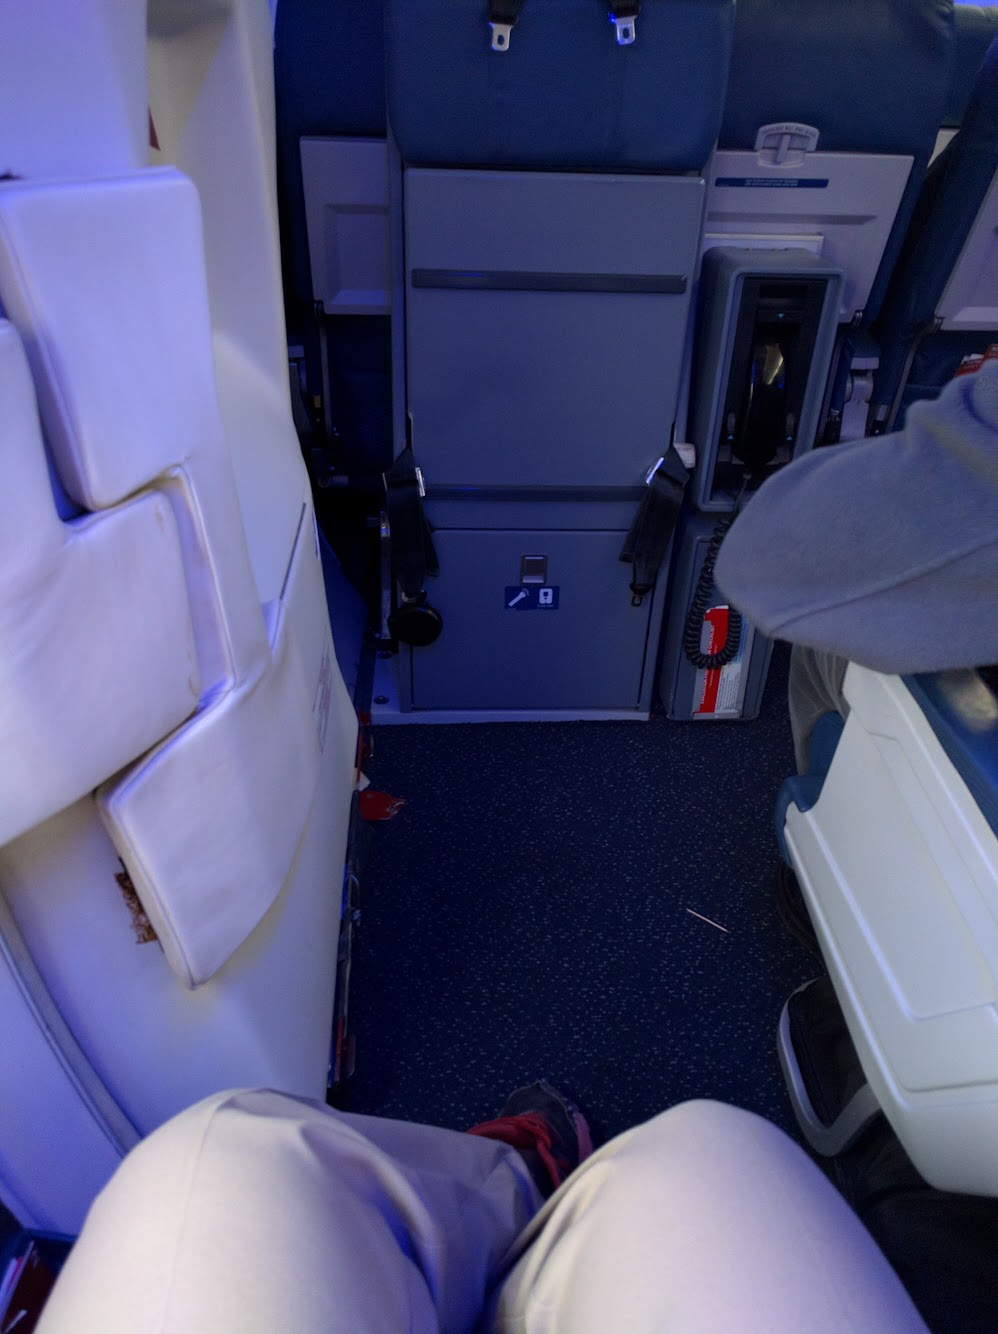 Review Of Delta Air Lines Flight From Atlanta To San